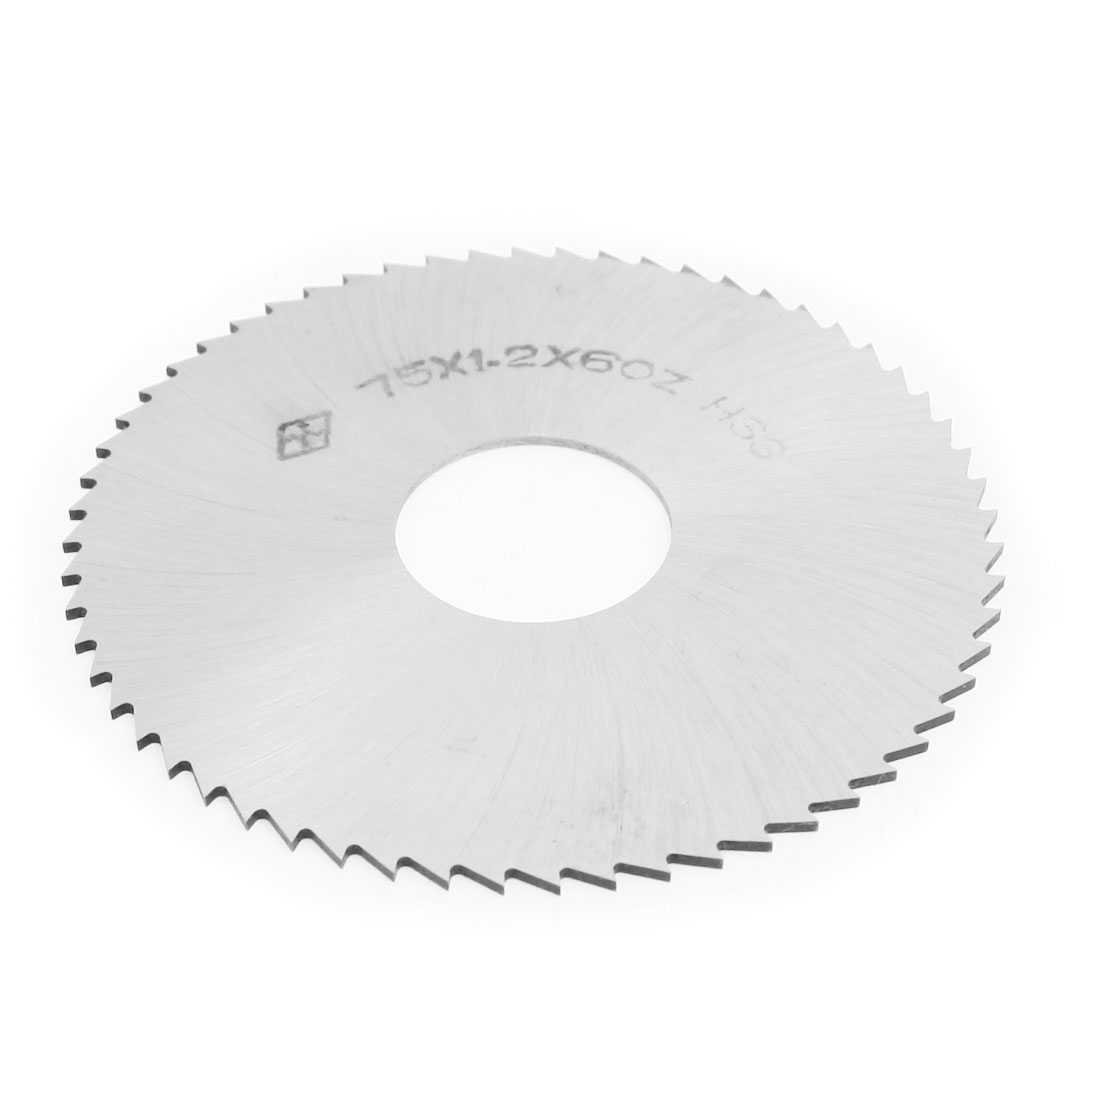 Unique Bargains Hand Tool 60 Tooth Silver Tone HSS Slitting Saw 75mmx22mmx1.2mm